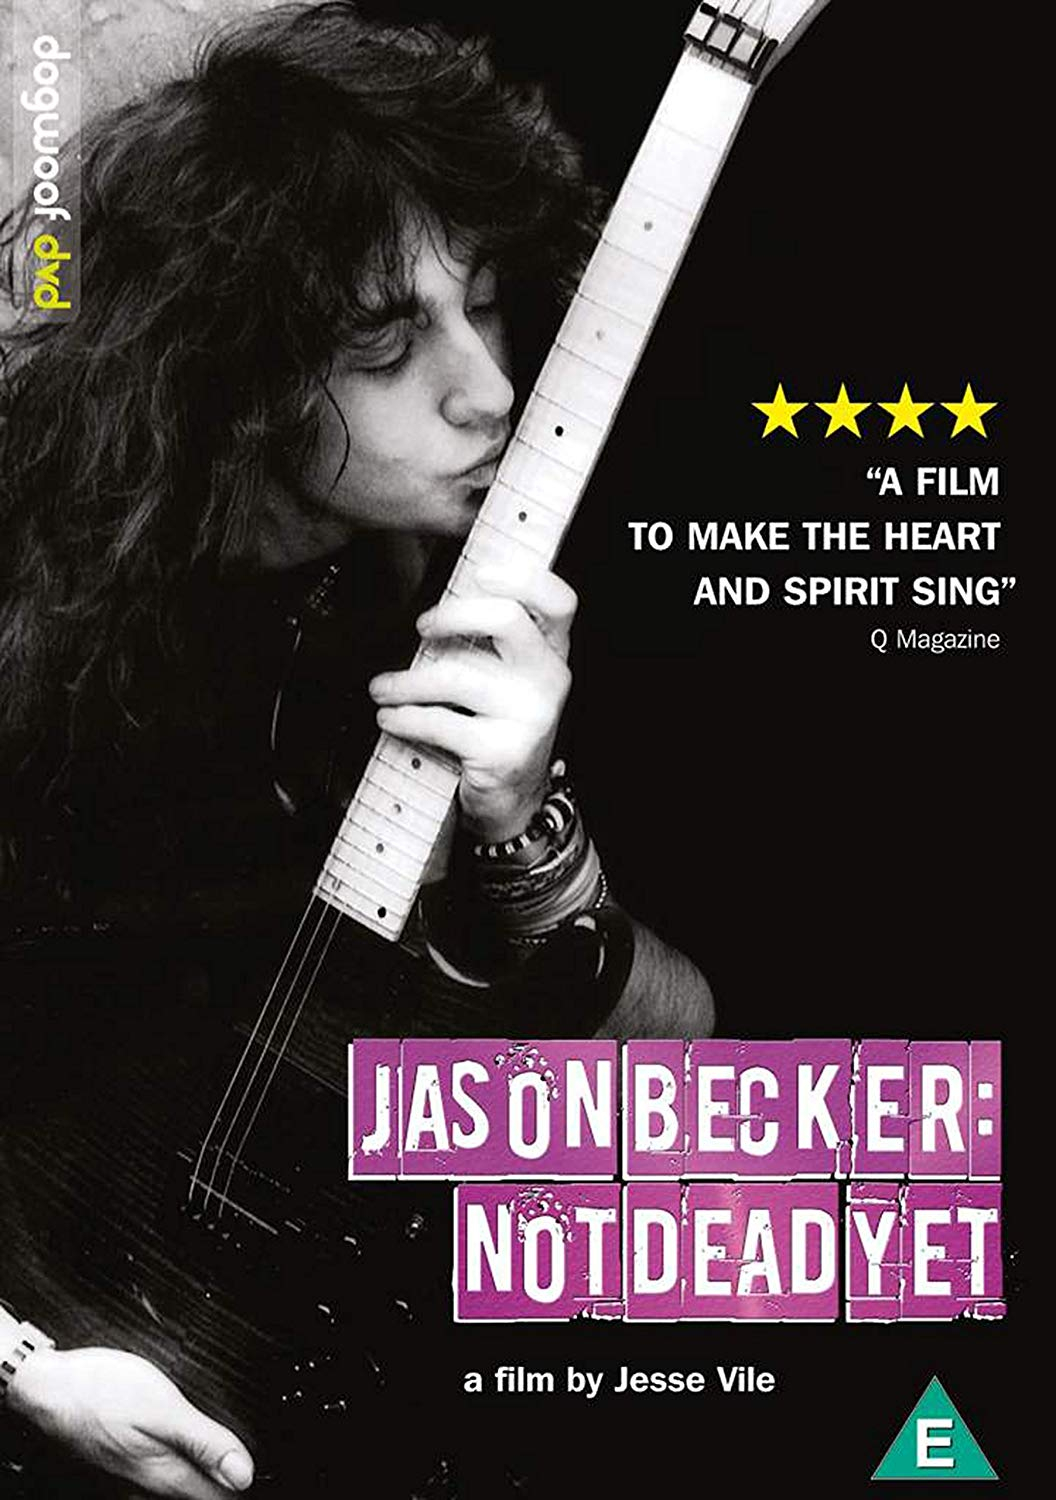 Buy Jason Becker: Not Dead Yet